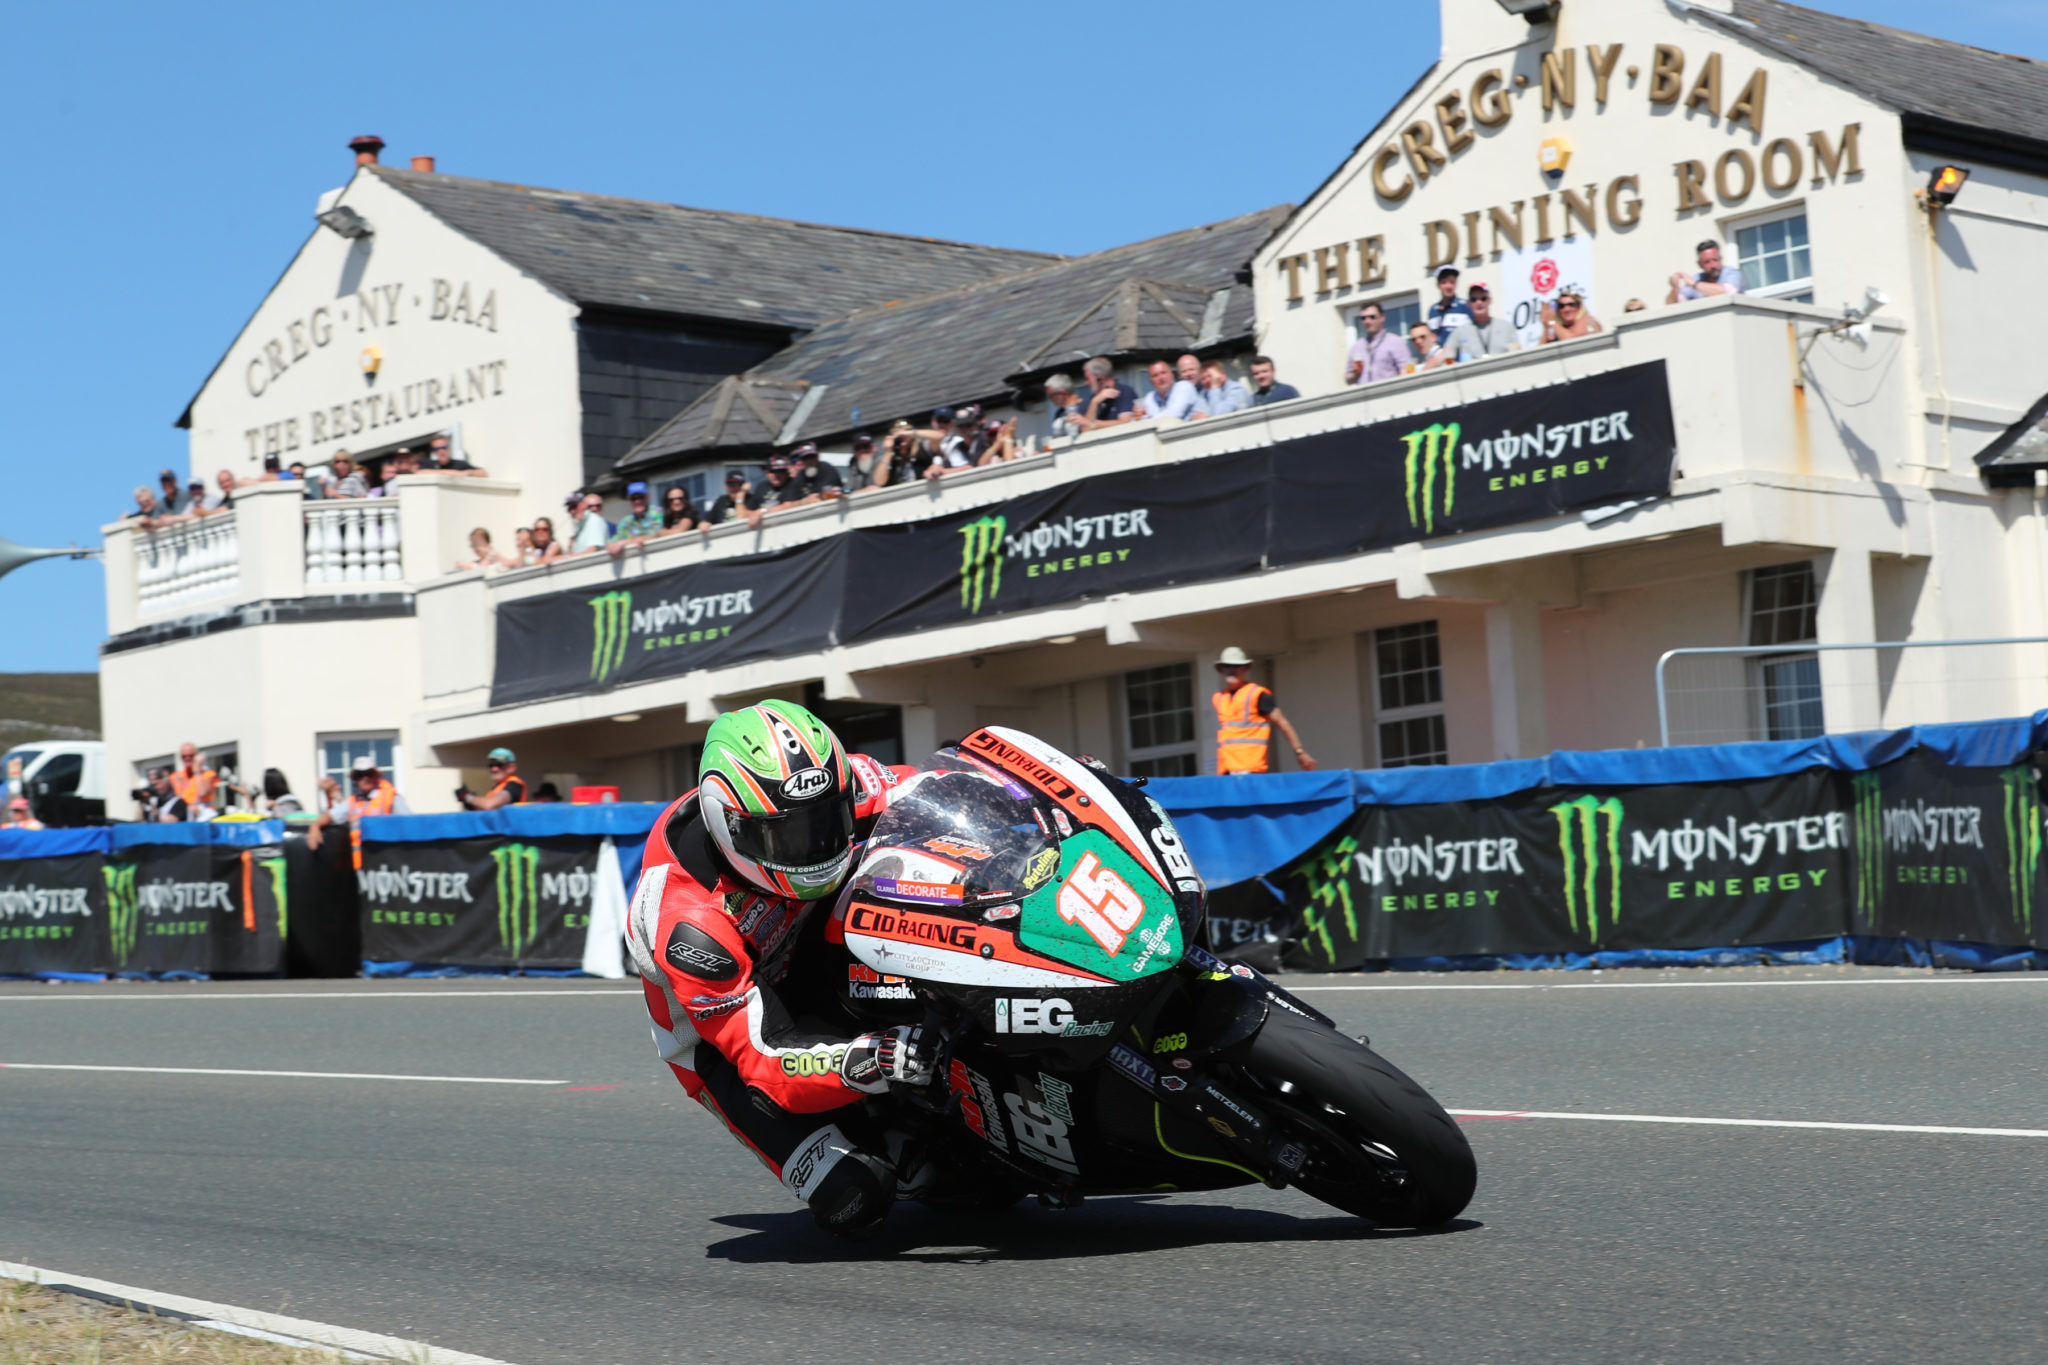 Derek McGee had his most successful TT to date in 2018 credit Pacemaker Press International